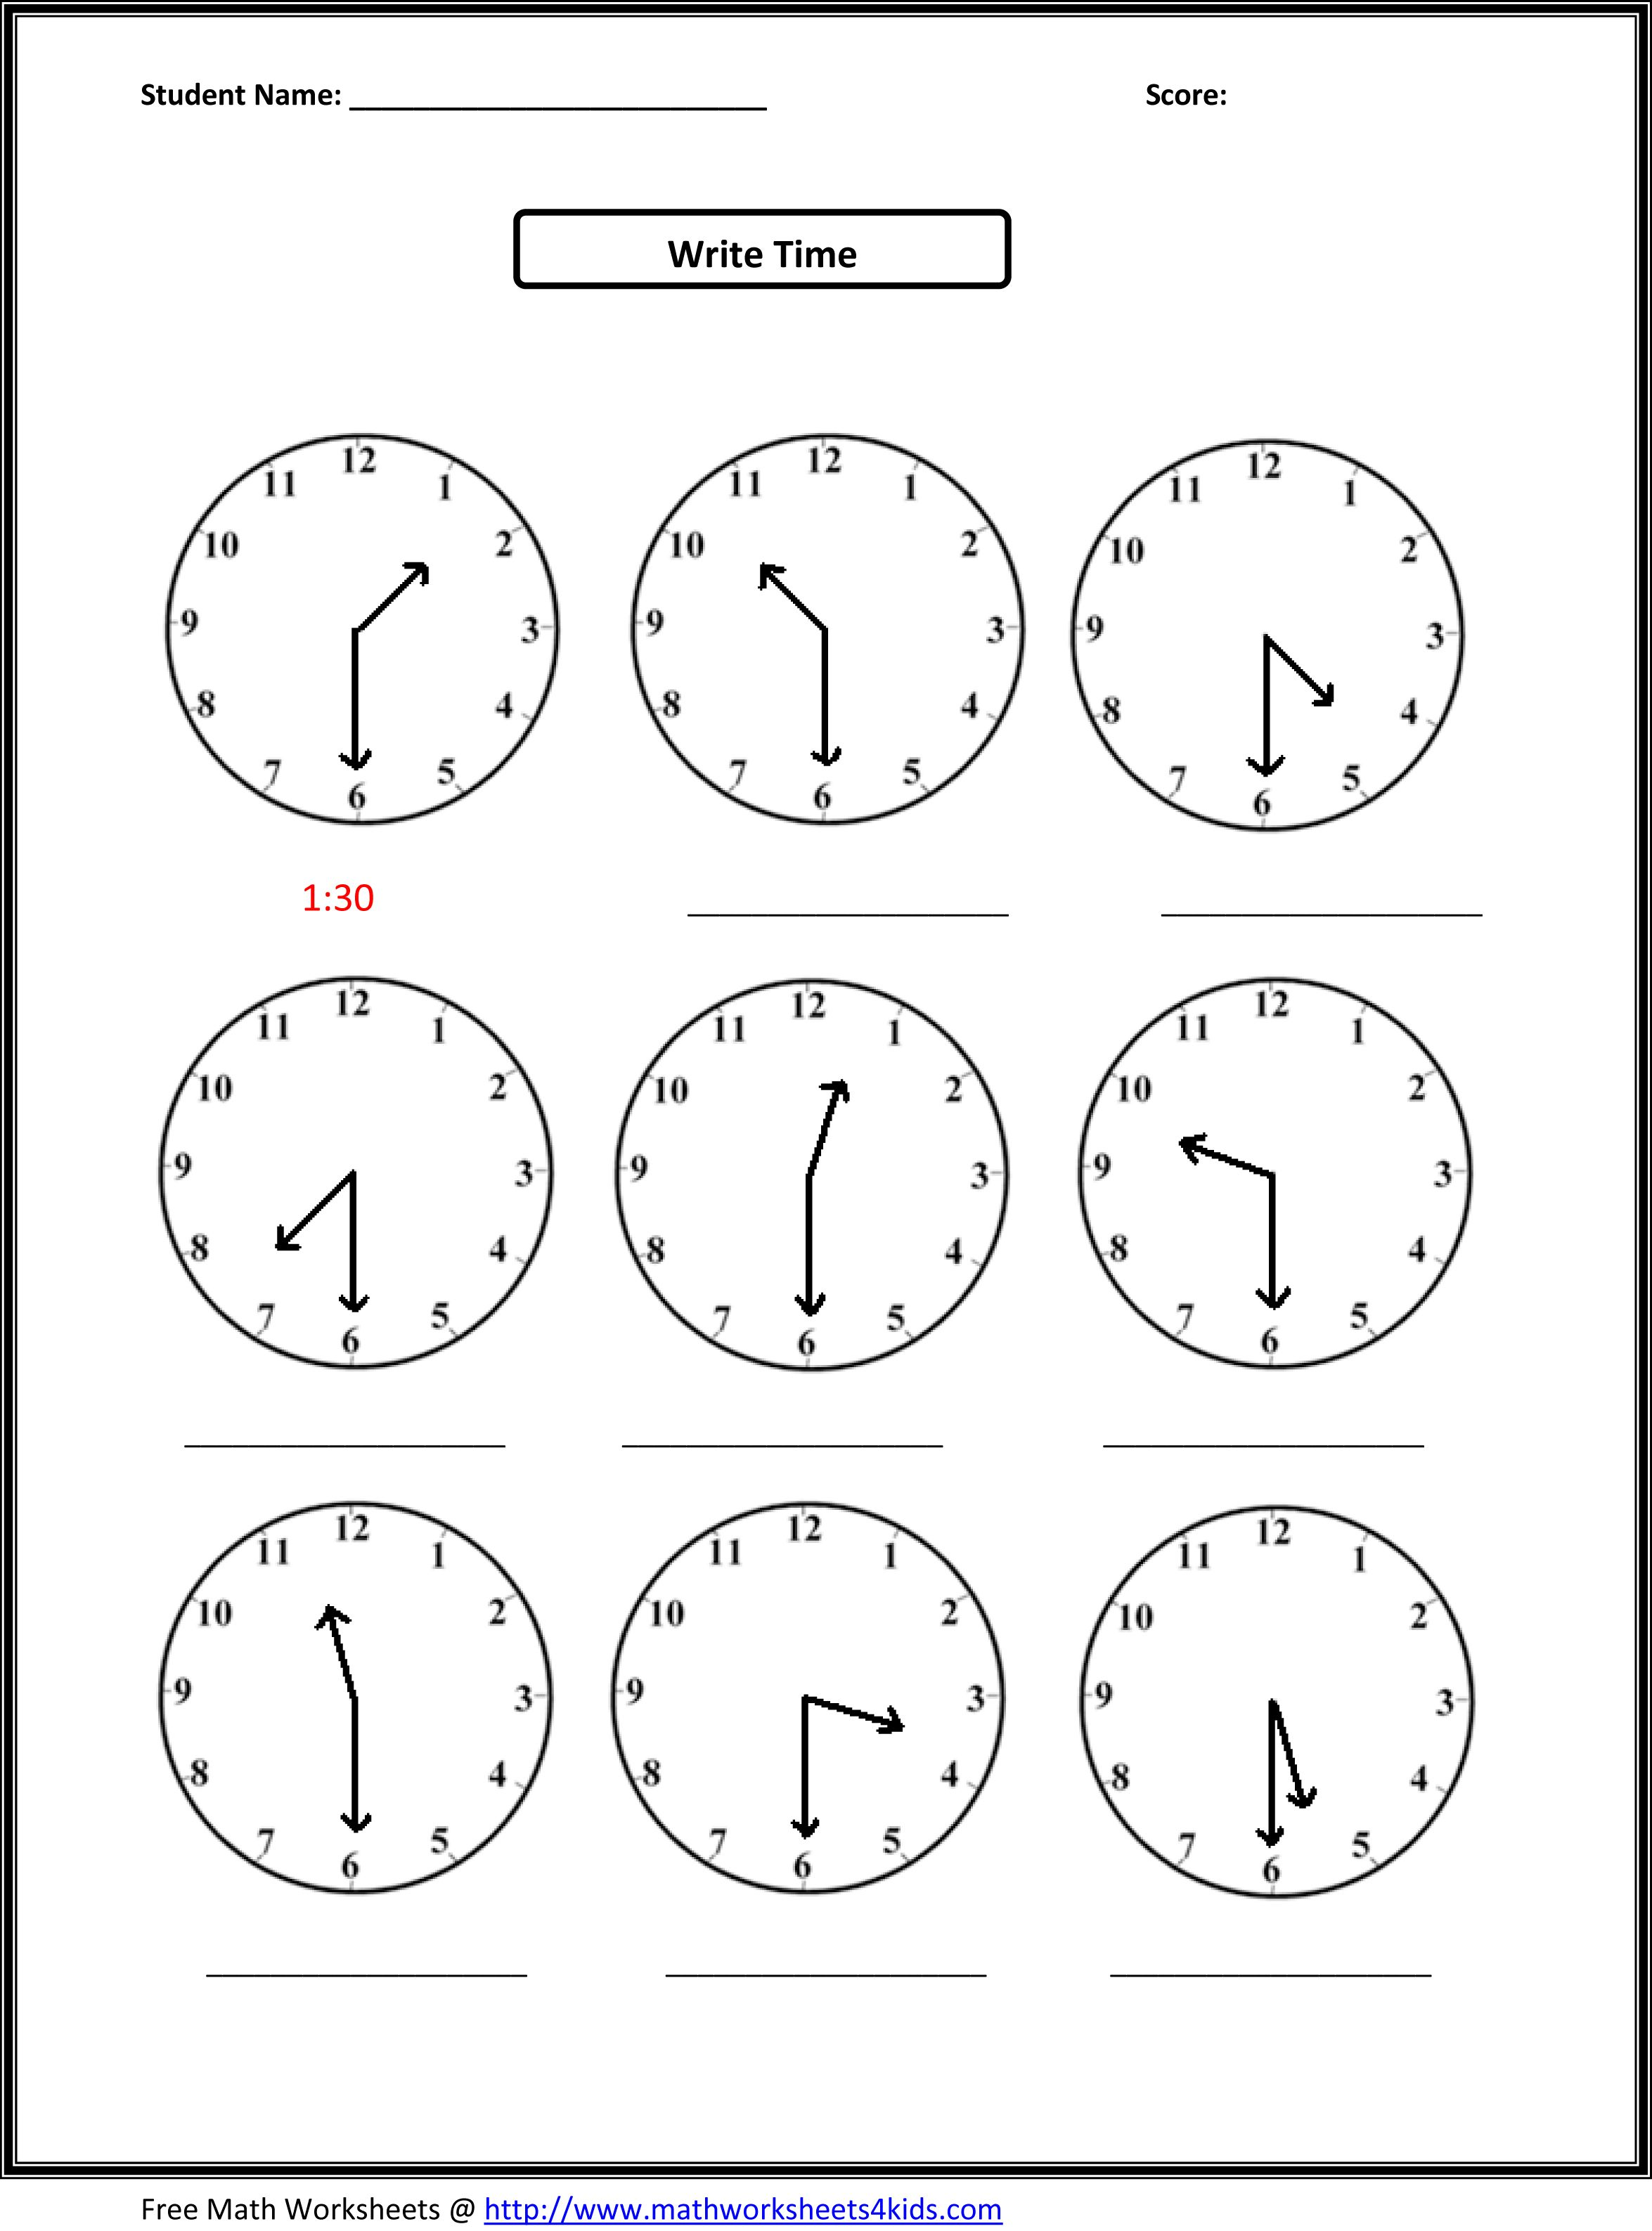 Proatmealus  Unusual Worksheet On Time For Grade   Reocurent With Magnificent Free Printable Telling Time Worksheets Nd Grade  Reocurent With Divine Worksheet Works Fractions Also Punctuation Paragraph Worksheets In Addition Lcm Worksheets With Answers And Contractions Worksheet Grade  As Well As Trace Abc Worksheet For Kids Additionally Division Table Worksheet From Reocurentcom With Proatmealus  Magnificent Worksheet On Time For Grade   Reocurent With Divine Free Printable Telling Time Worksheets Nd Grade  Reocurent And Unusual Worksheet Works Fractions Also Punctuation Paragraph Worksheets In Addition Lcm Worksheets With Answers From Reocurentcom